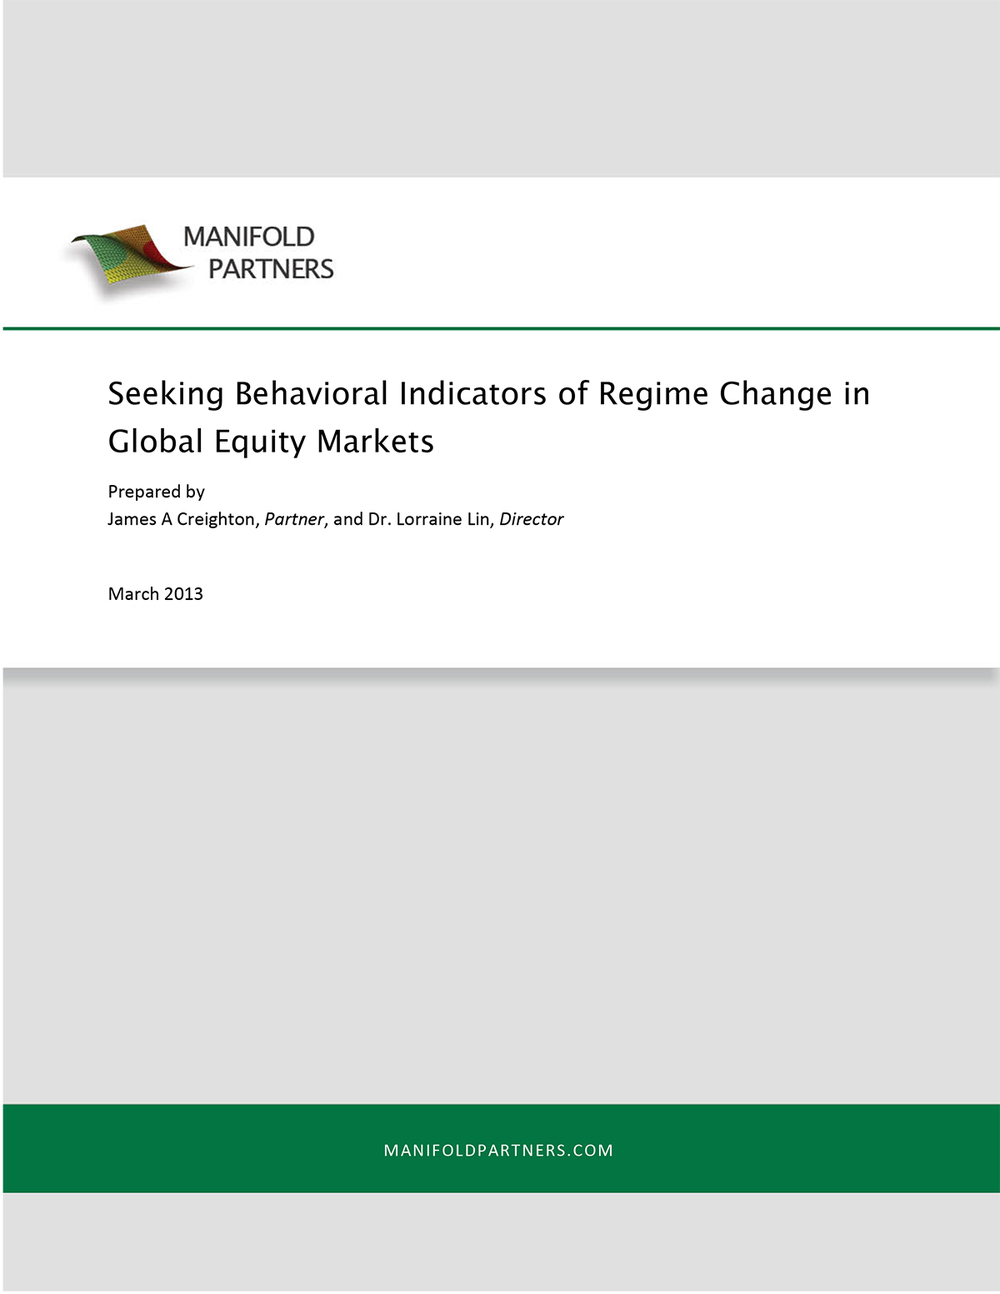 Seeking Behavioral Indicators of Regime Change in Global Equity Markets